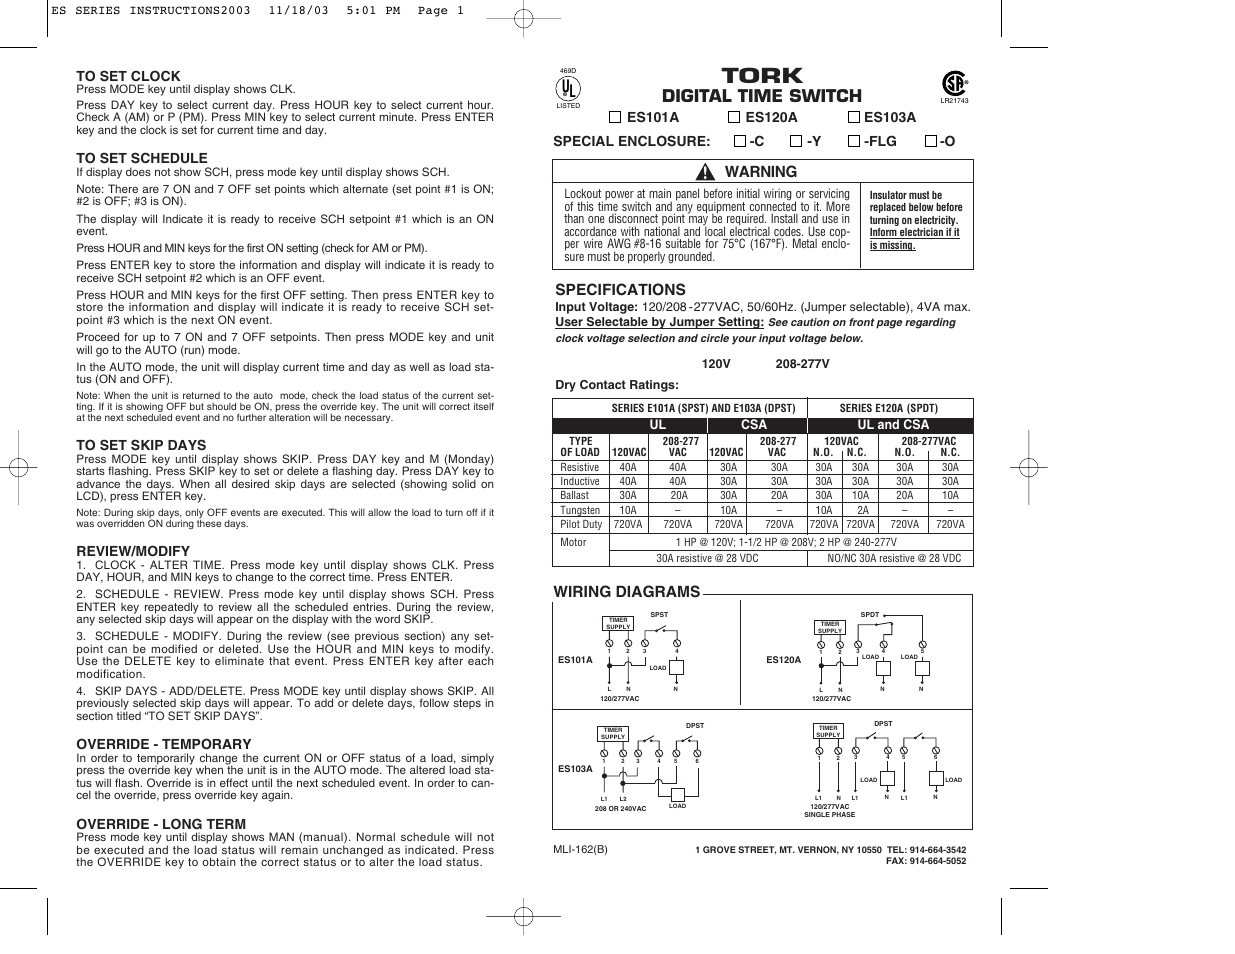 Industrial Disconnect Switch Wiring Diagram Electrical Diagrams Taskmaster F2f5107ca1l Model Tork Digital Time Nsi Industries Es103a Rv